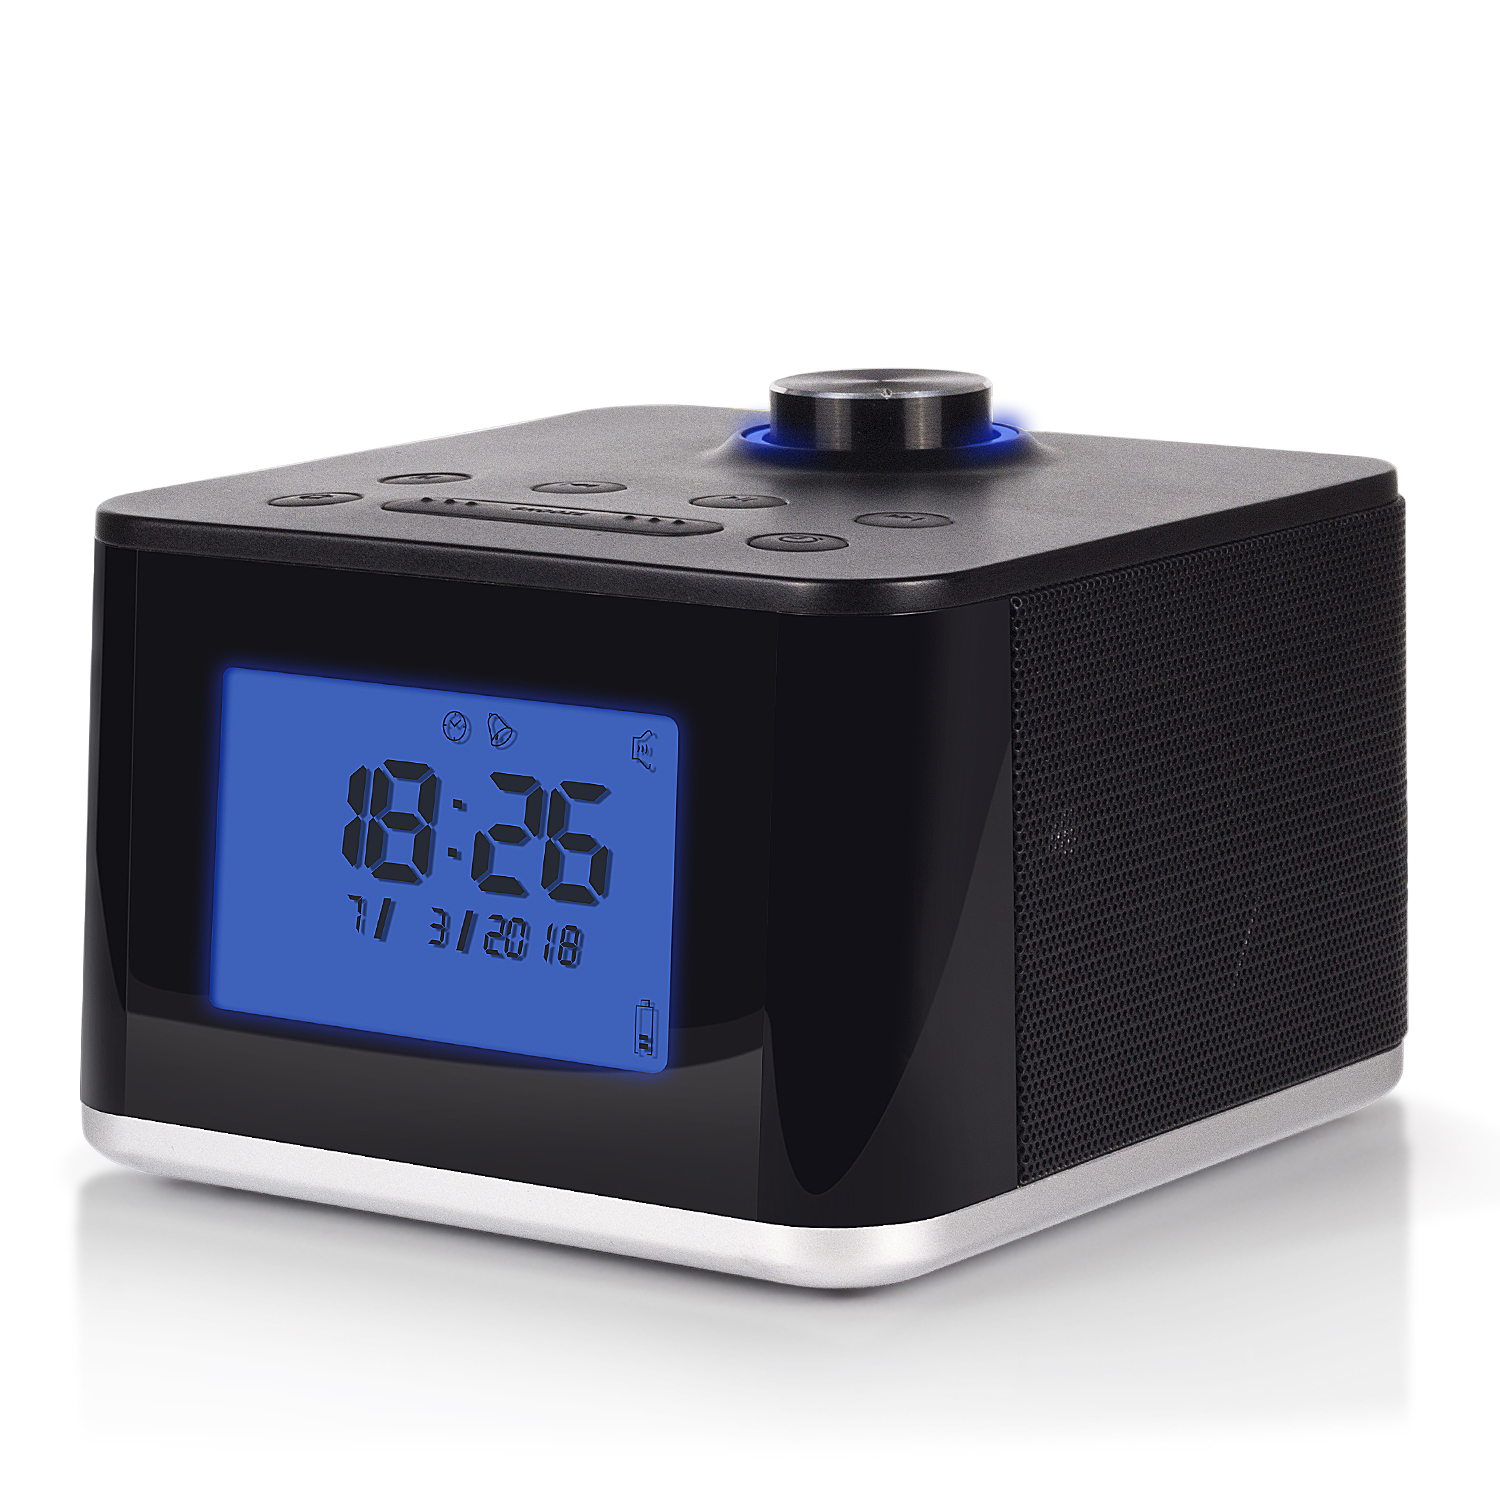 Clock Radio with MP3 Alarm - August MB315 - Wake to your Favourite Music from USB and SD or FM Station - Rechargeable Portable Speaker